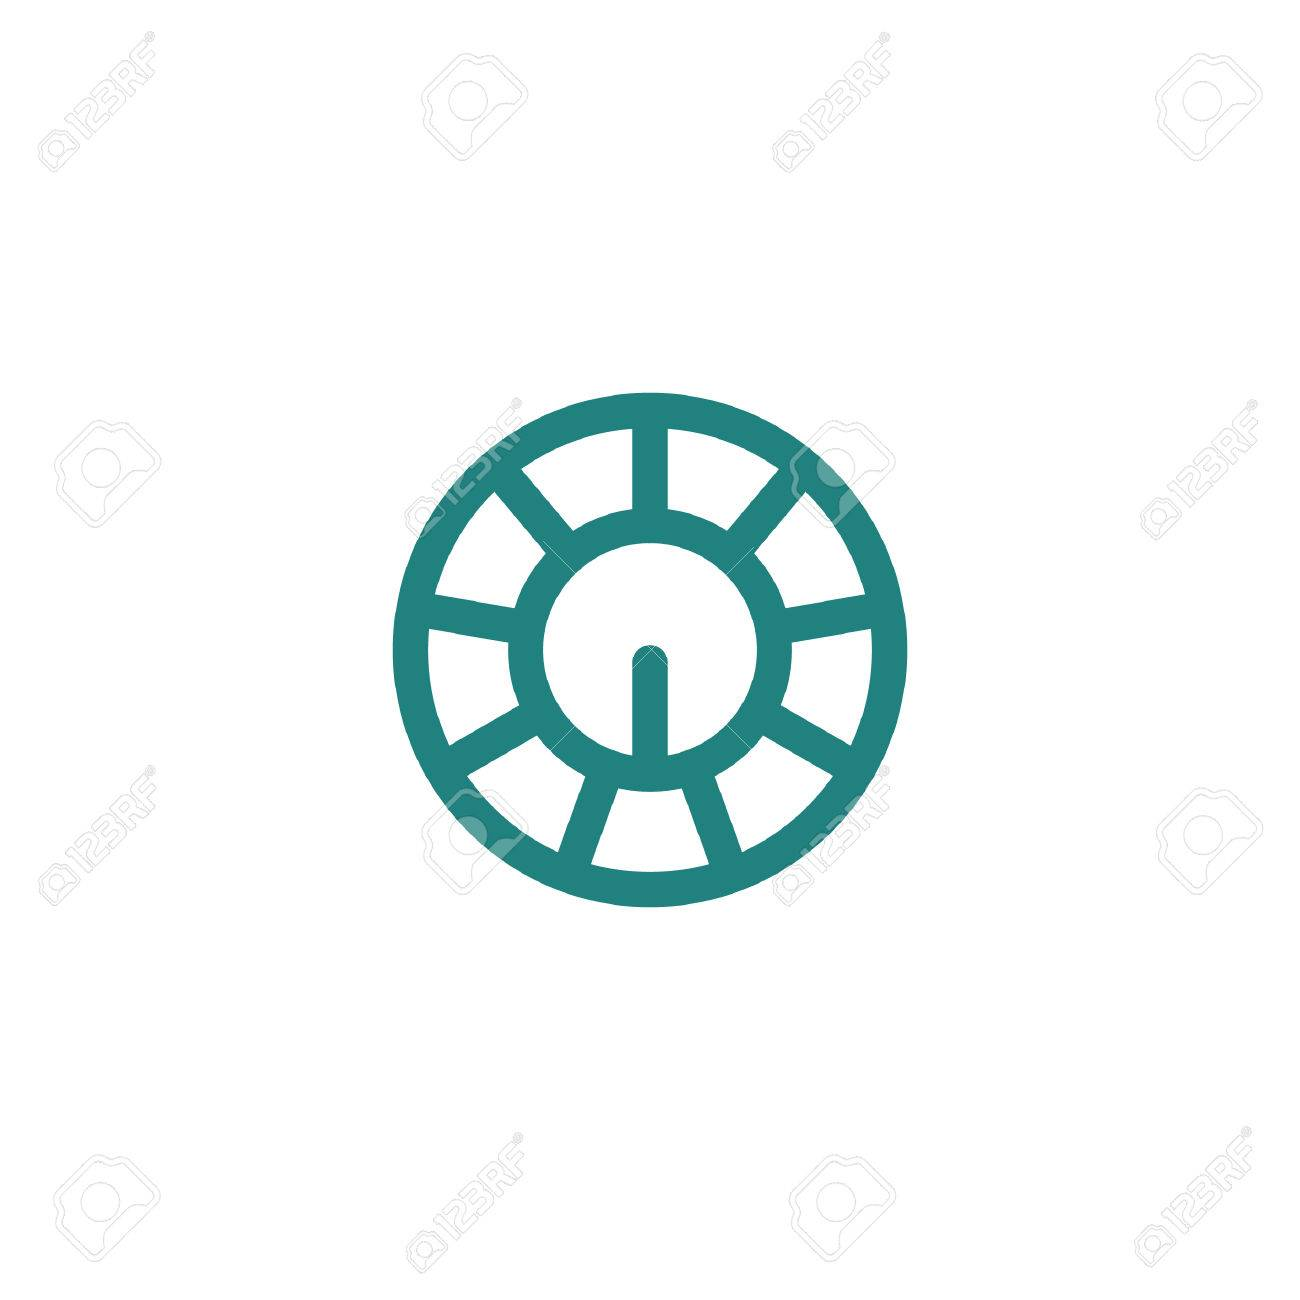 Oscillator Knobs Icon Royalty Free Cliparts, Vectors, And Stock ...